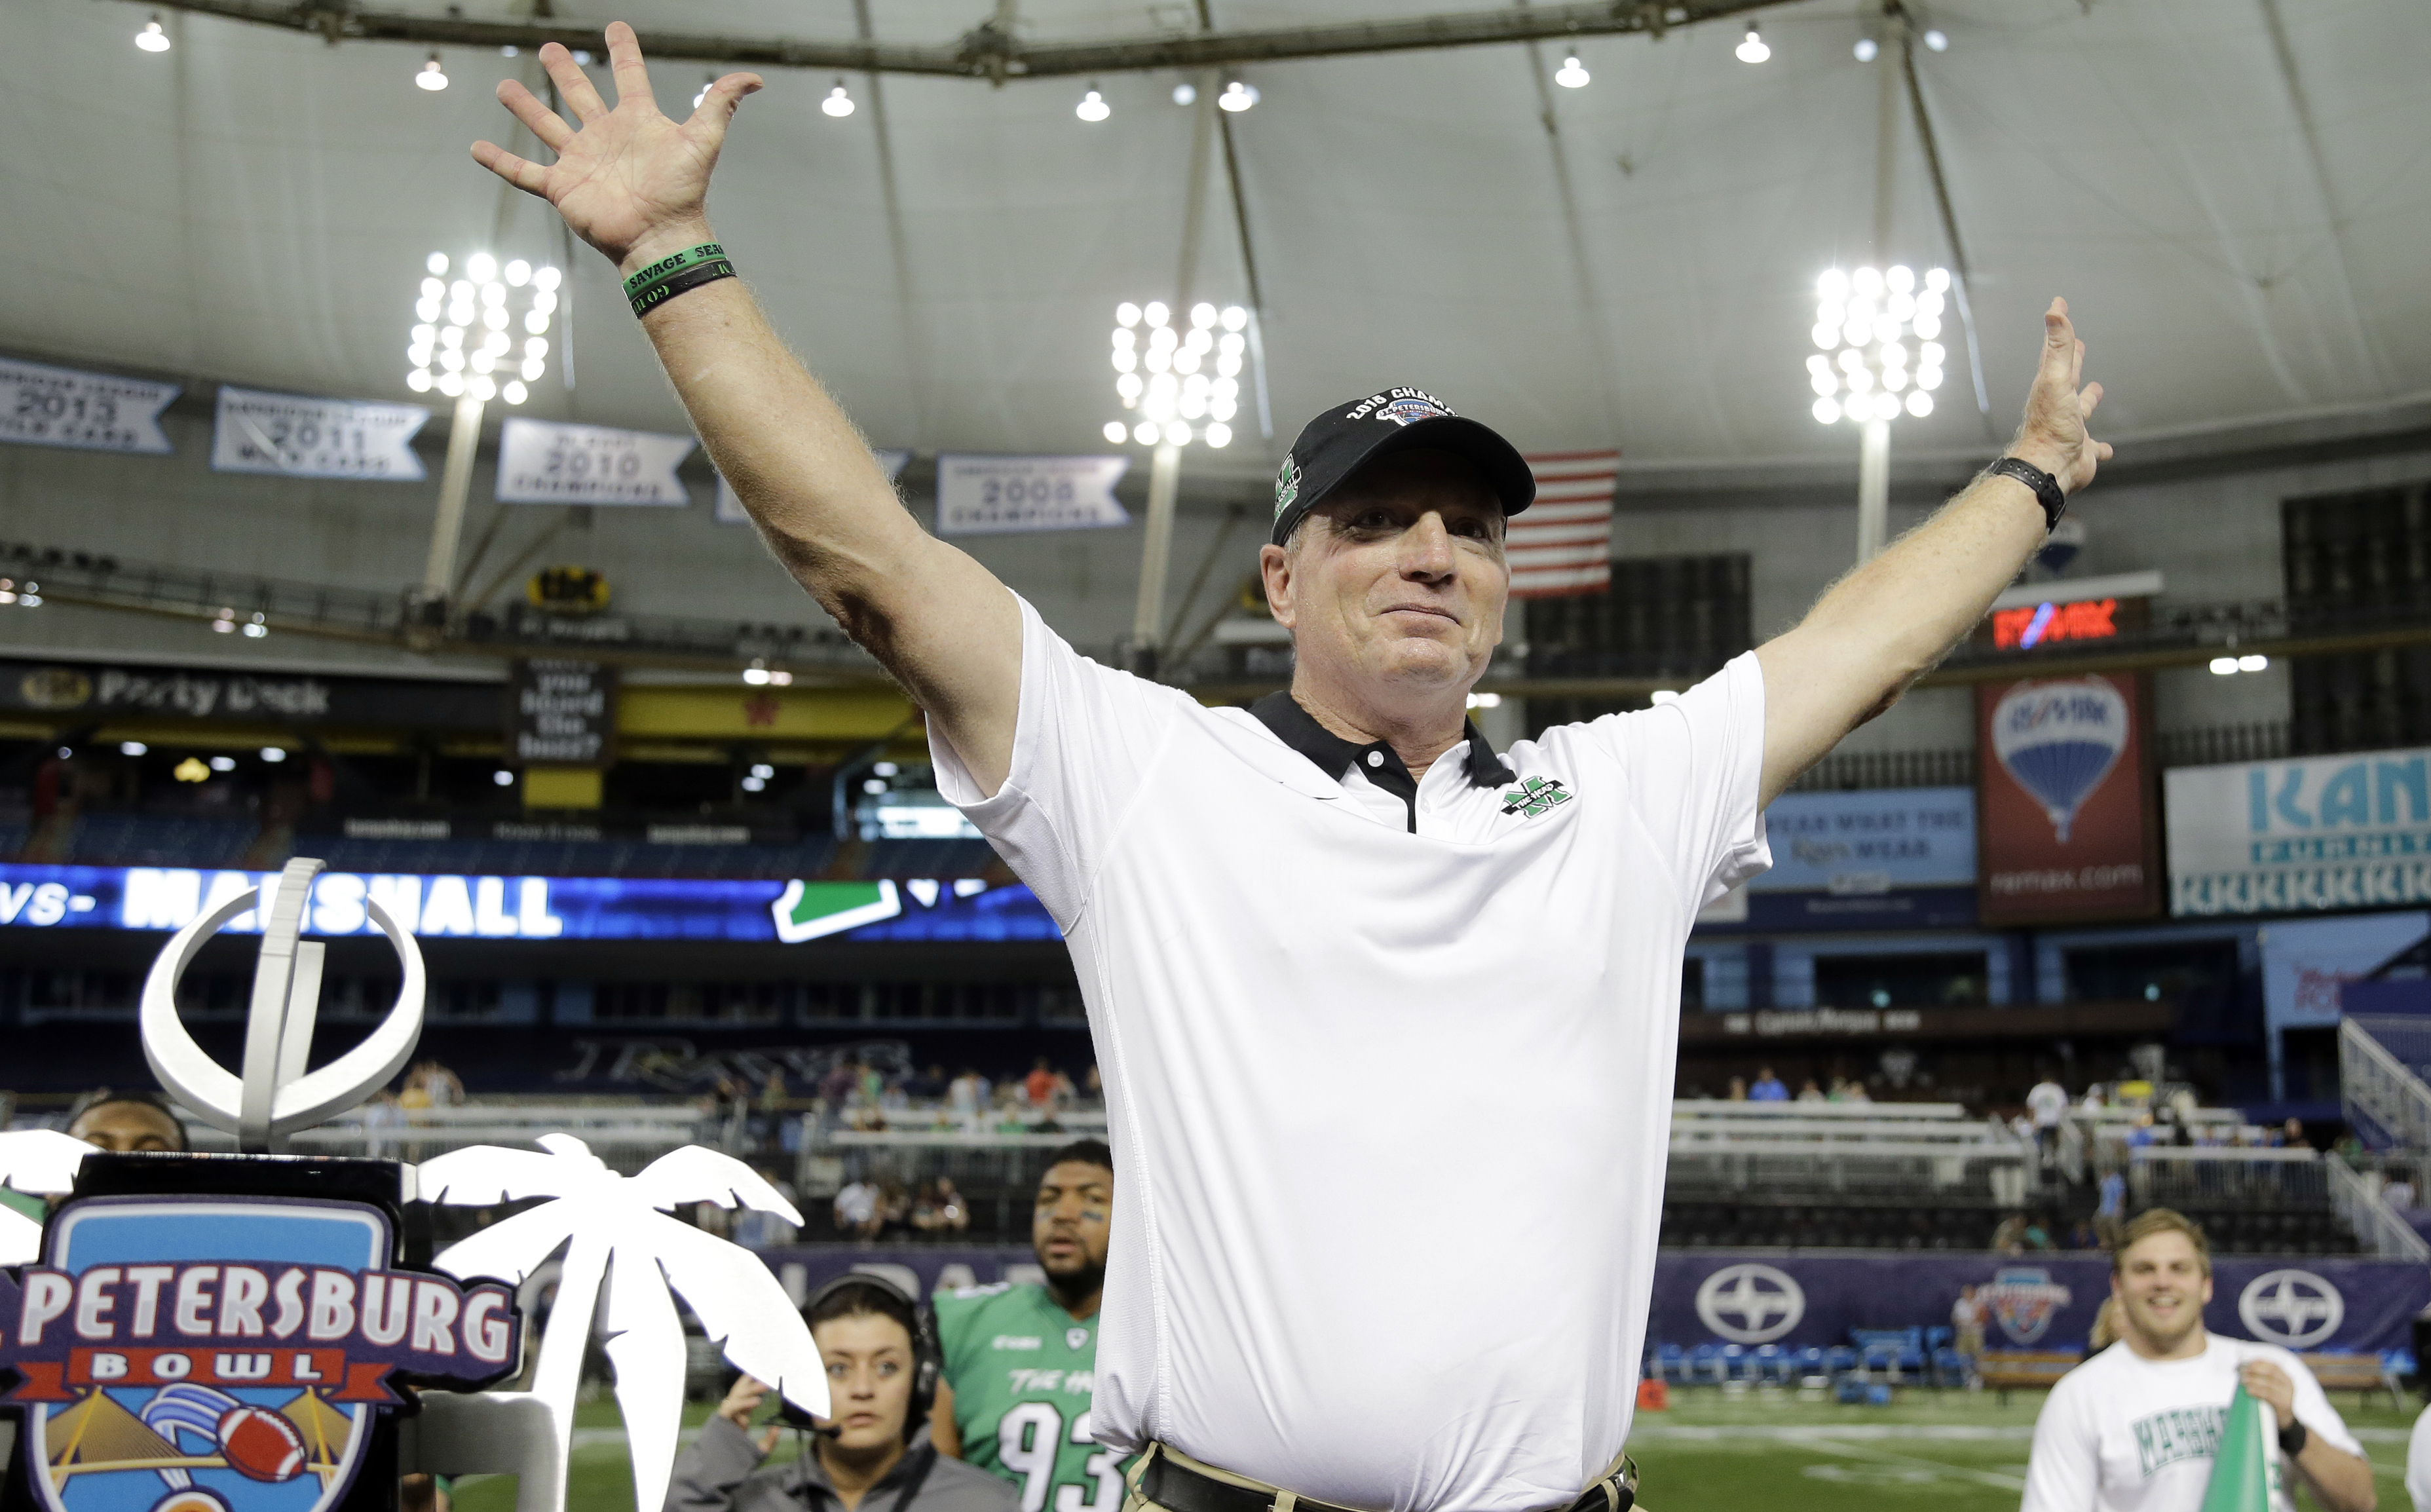 FILE - In this Dec. 26, 2015, file photo, Marshall head coach Doc Holliday celebrates the team's 16-10 win against Connecticut in the St. Petersburg Bowl NCAA college football game in St. Petersburg, Fla. Marshall has never had four consecutive 10-win sea